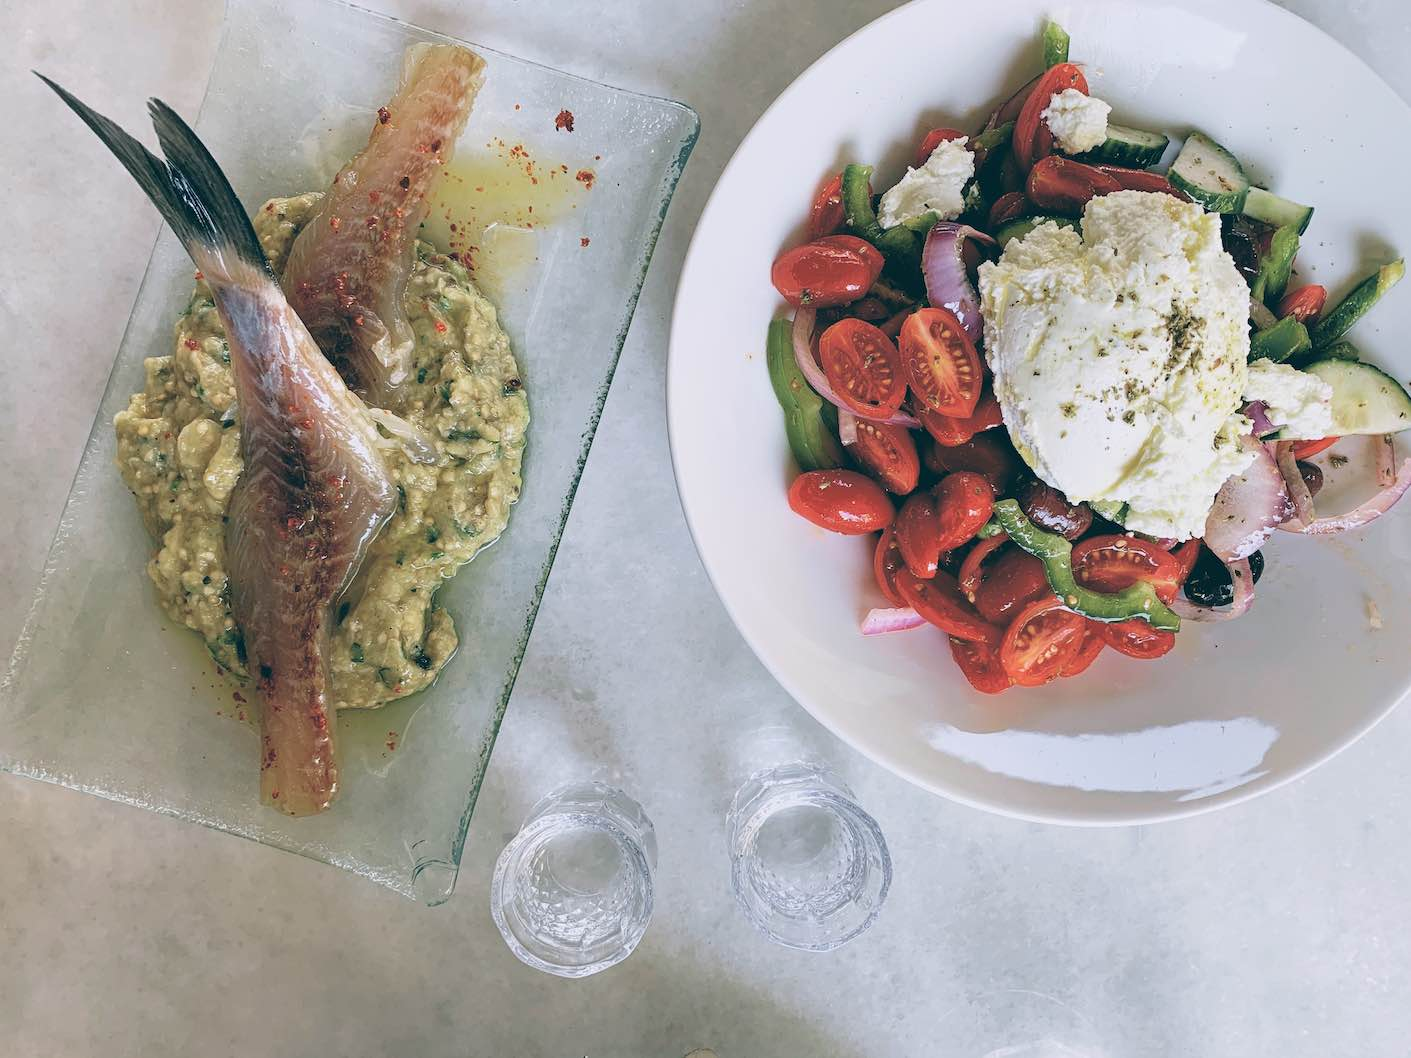 Athens: ultra hip, budget and creative cuisine at FITA